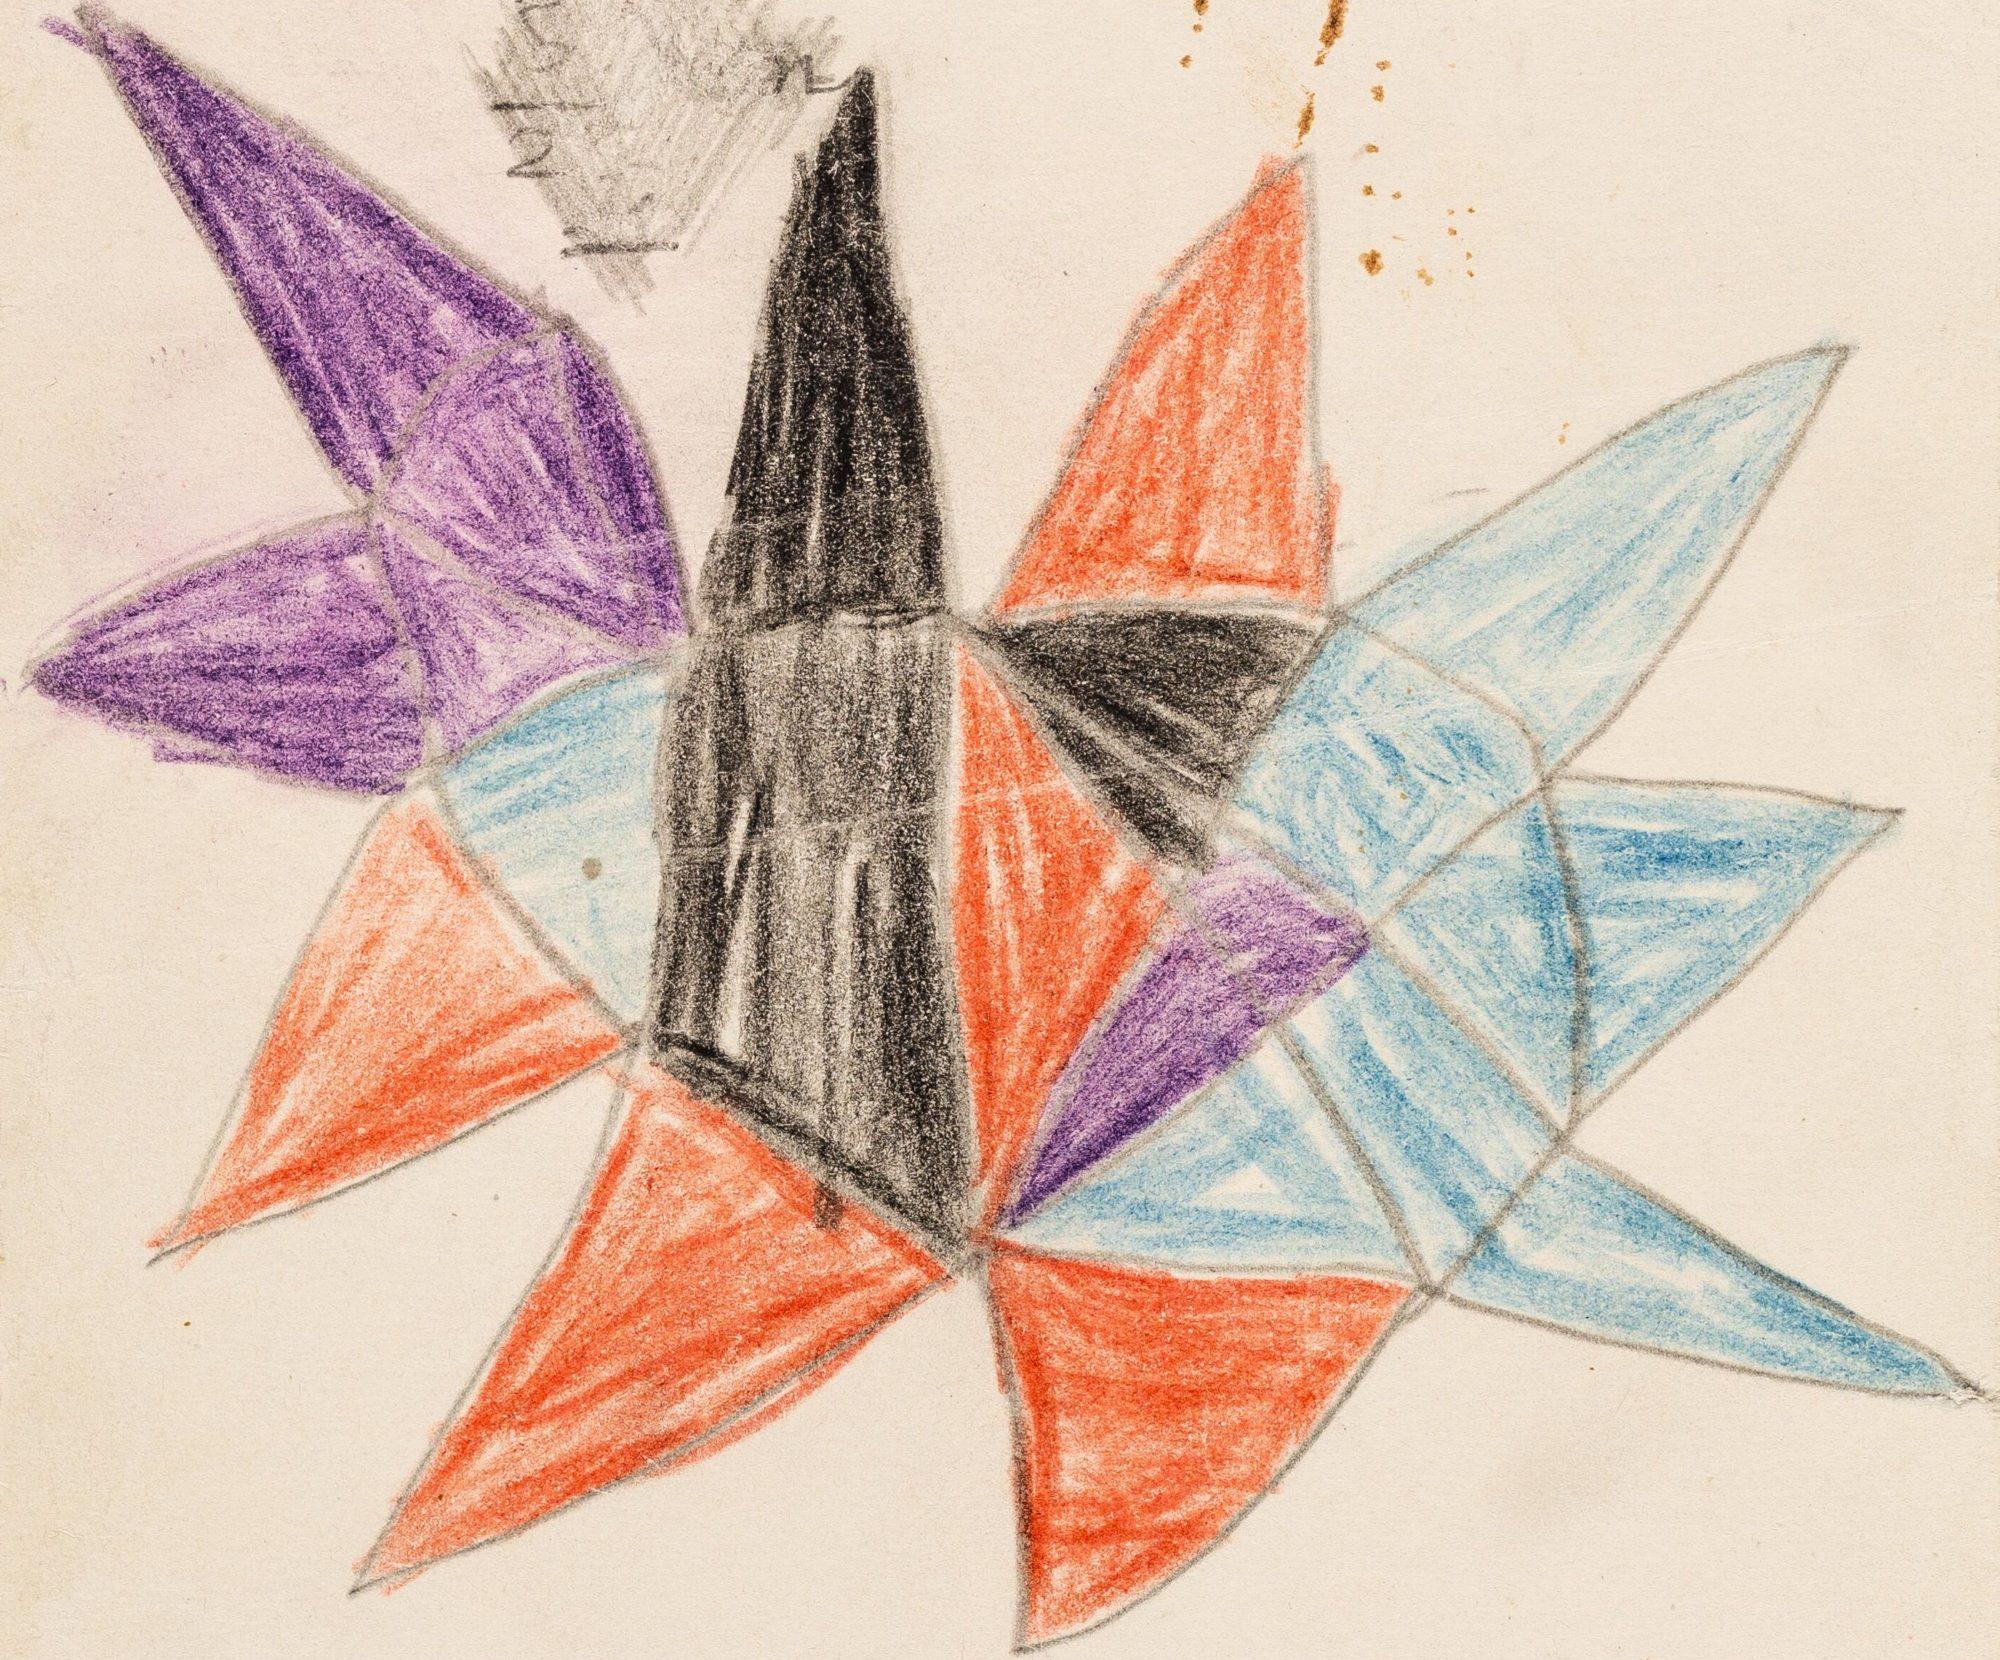 Child's drawing of colourful spiky shapes,by 10-year-old Richard, one of Klein's patients